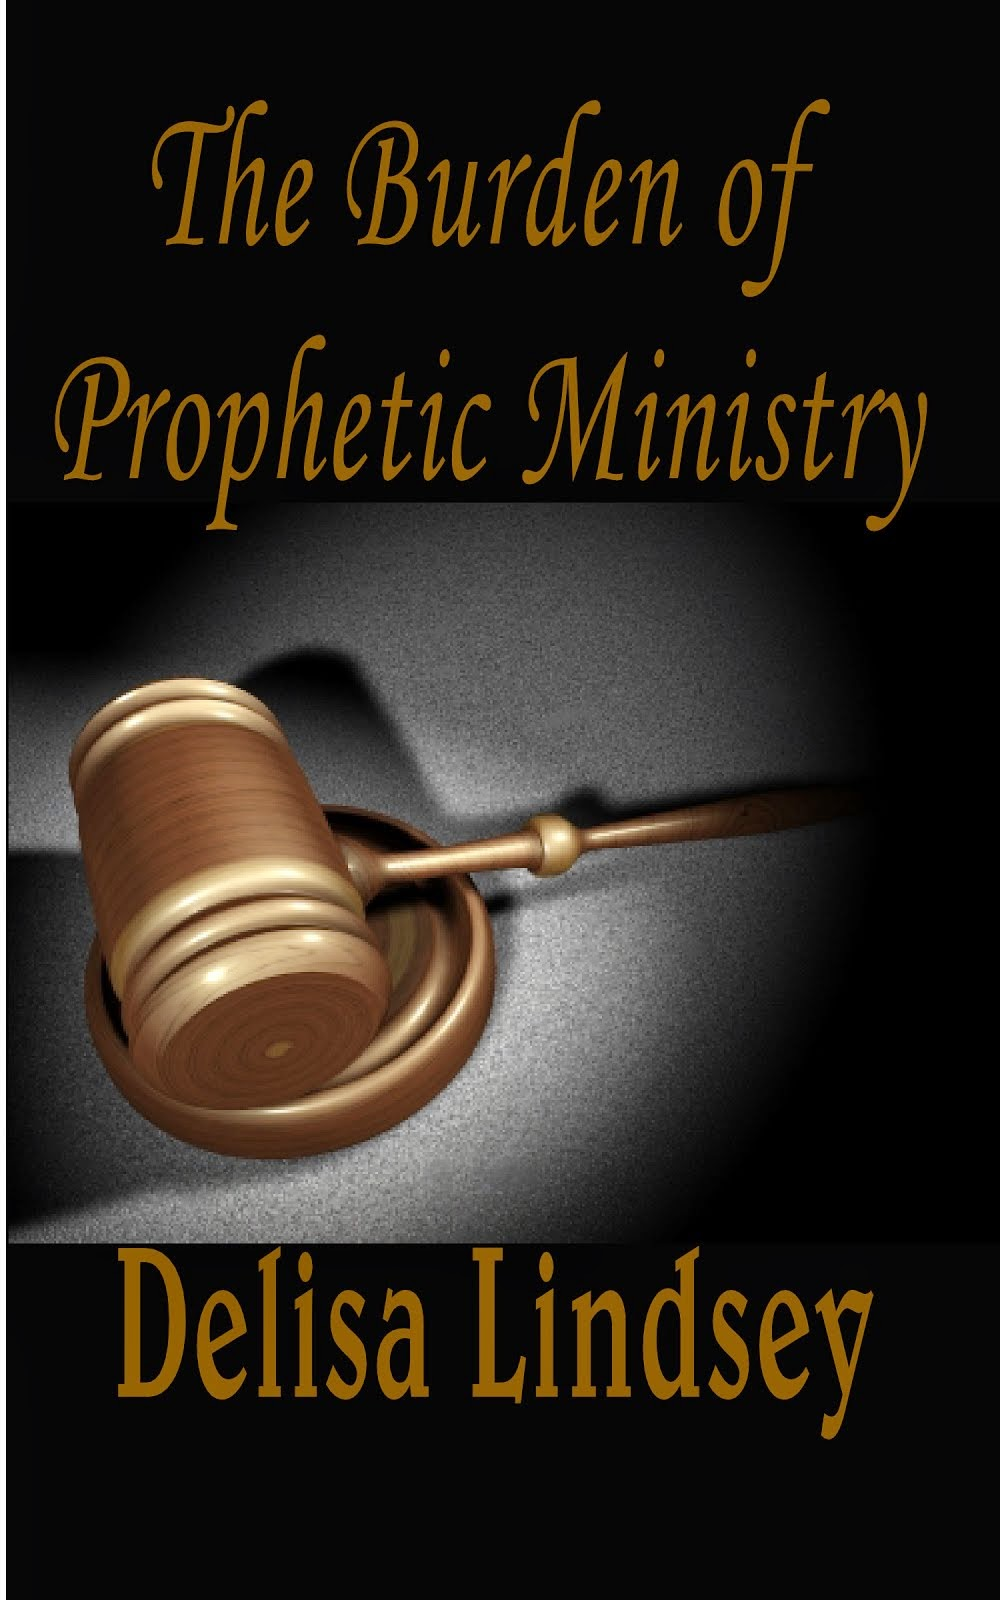 The Burden of Prophetic Ministry $6.99